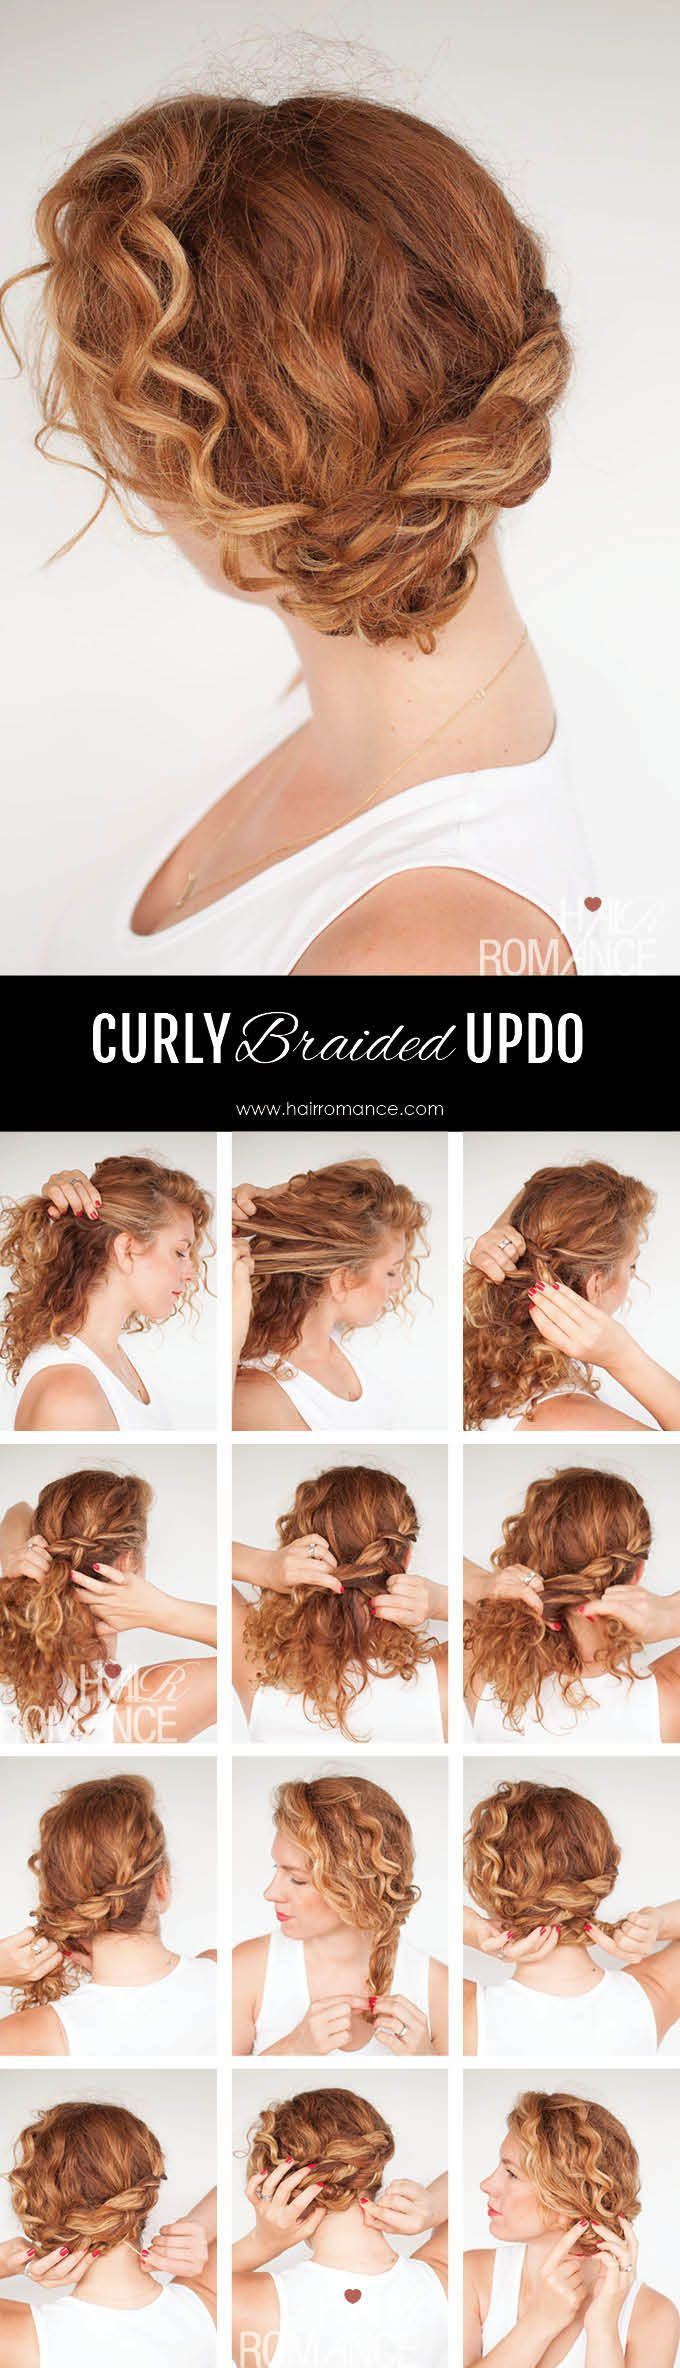 best 25+ curly hair tutorial ideas on pinterest | how to do curls